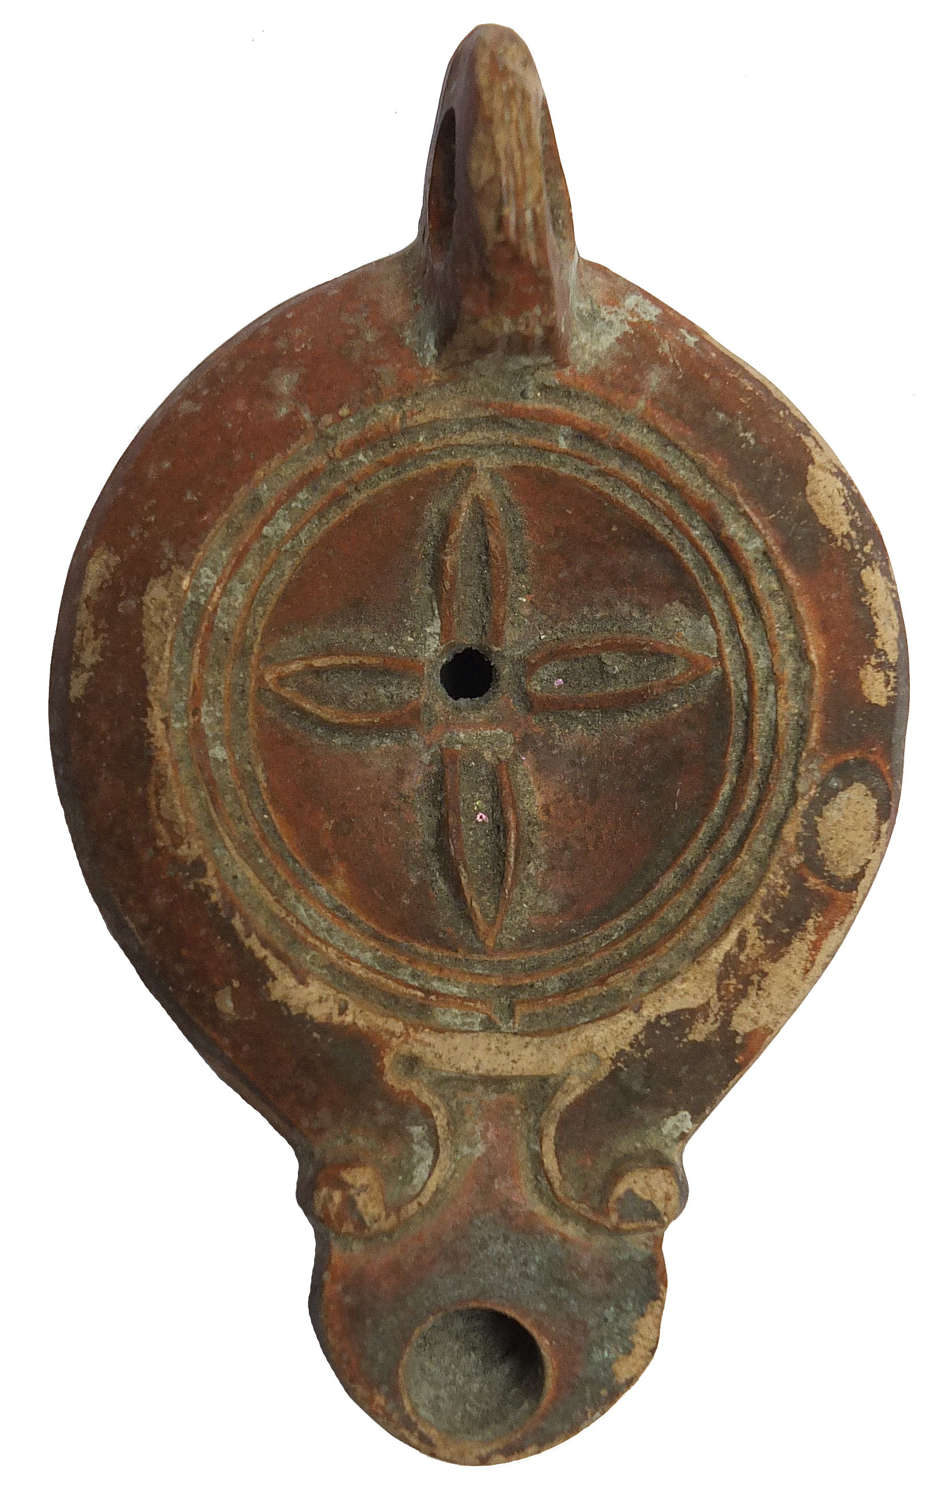 A Roman red-slipped oil lamp, c. 1st - 2nd Century A.D.